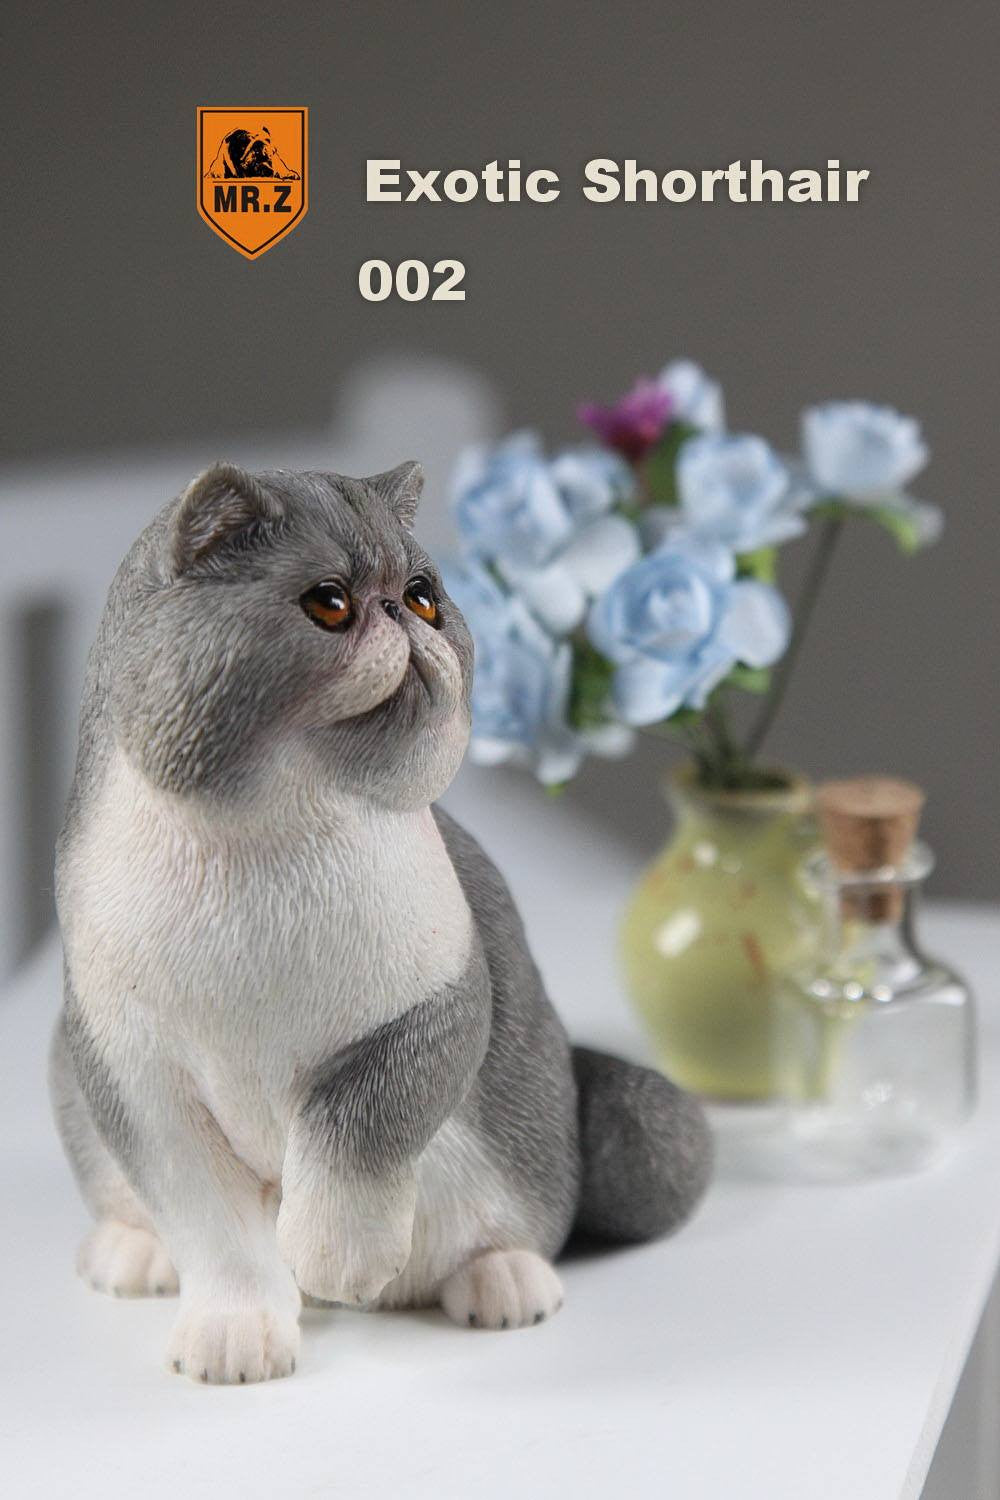 MR.Z - Real Animal Series No.8 - 1/6th Scale Exotic Shorthair Cat (Garfield) 001-005 - Marvelous Toys - 15